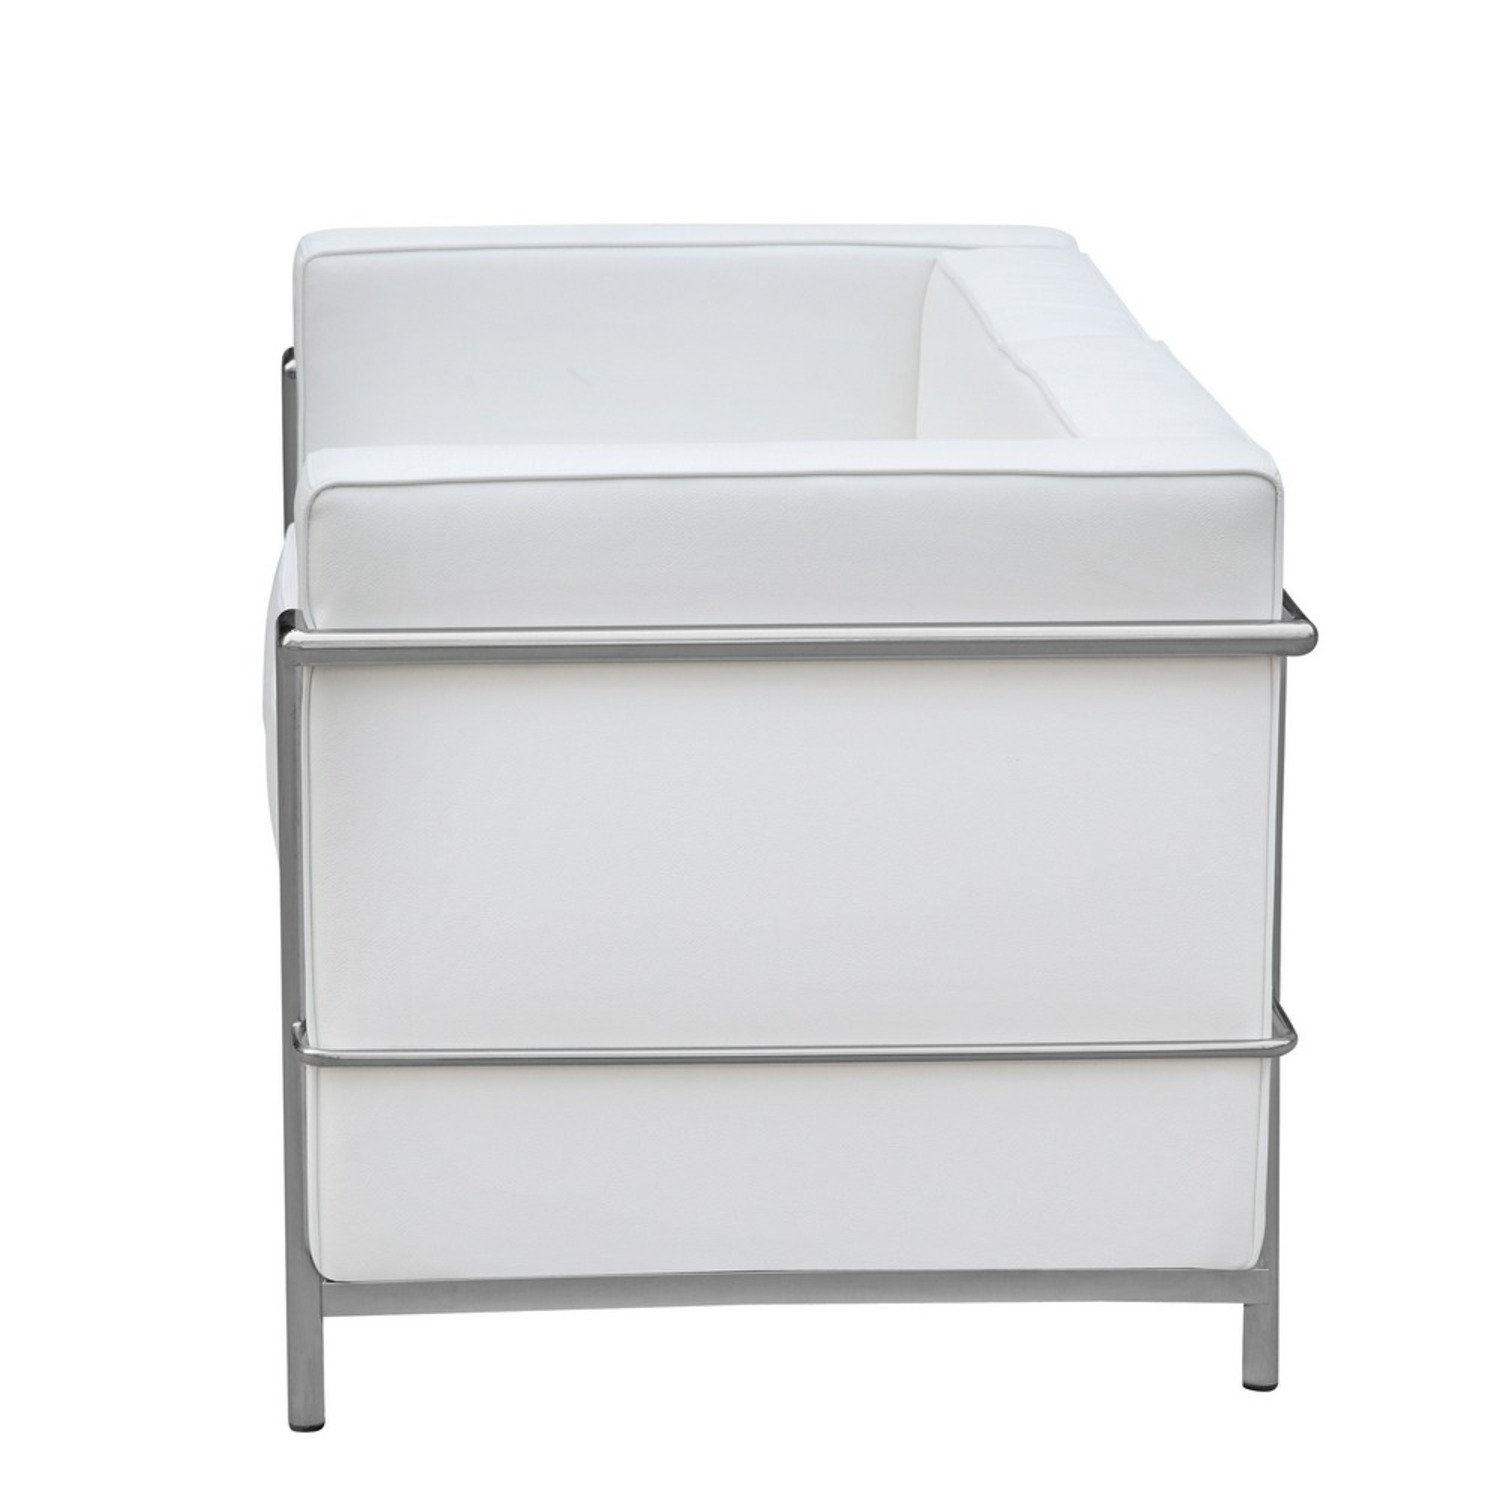 Loveseat In White Leather W/ Stainless Steel Frame - image-3